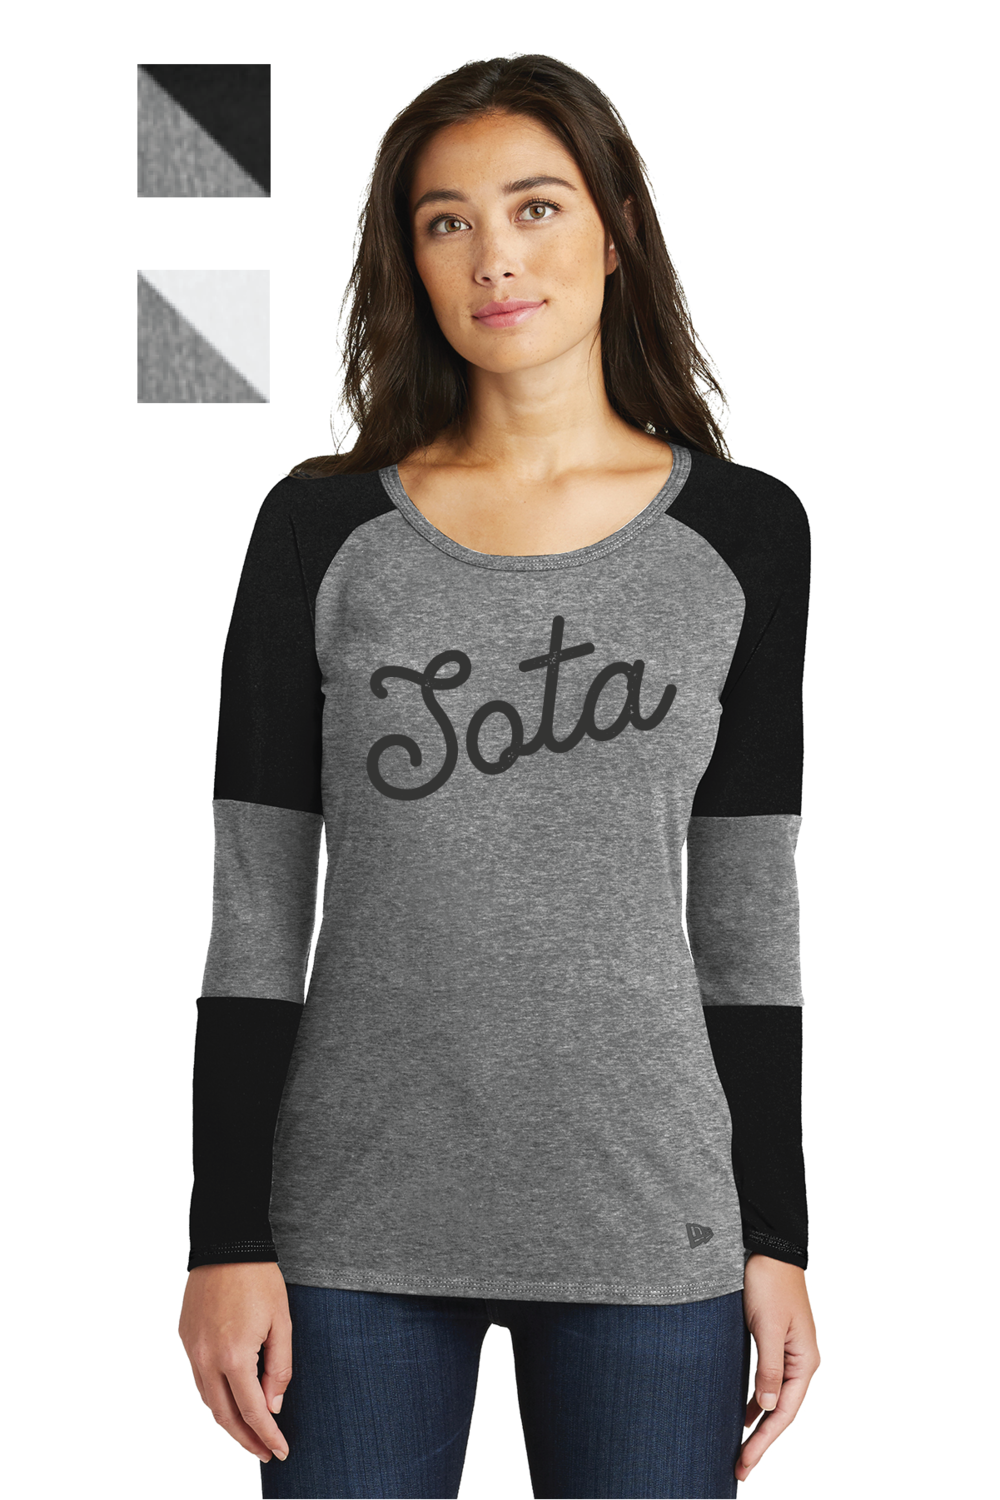 Sota Design Printed on New Era® Ladies Tri-Blend Performance Baseball Tee